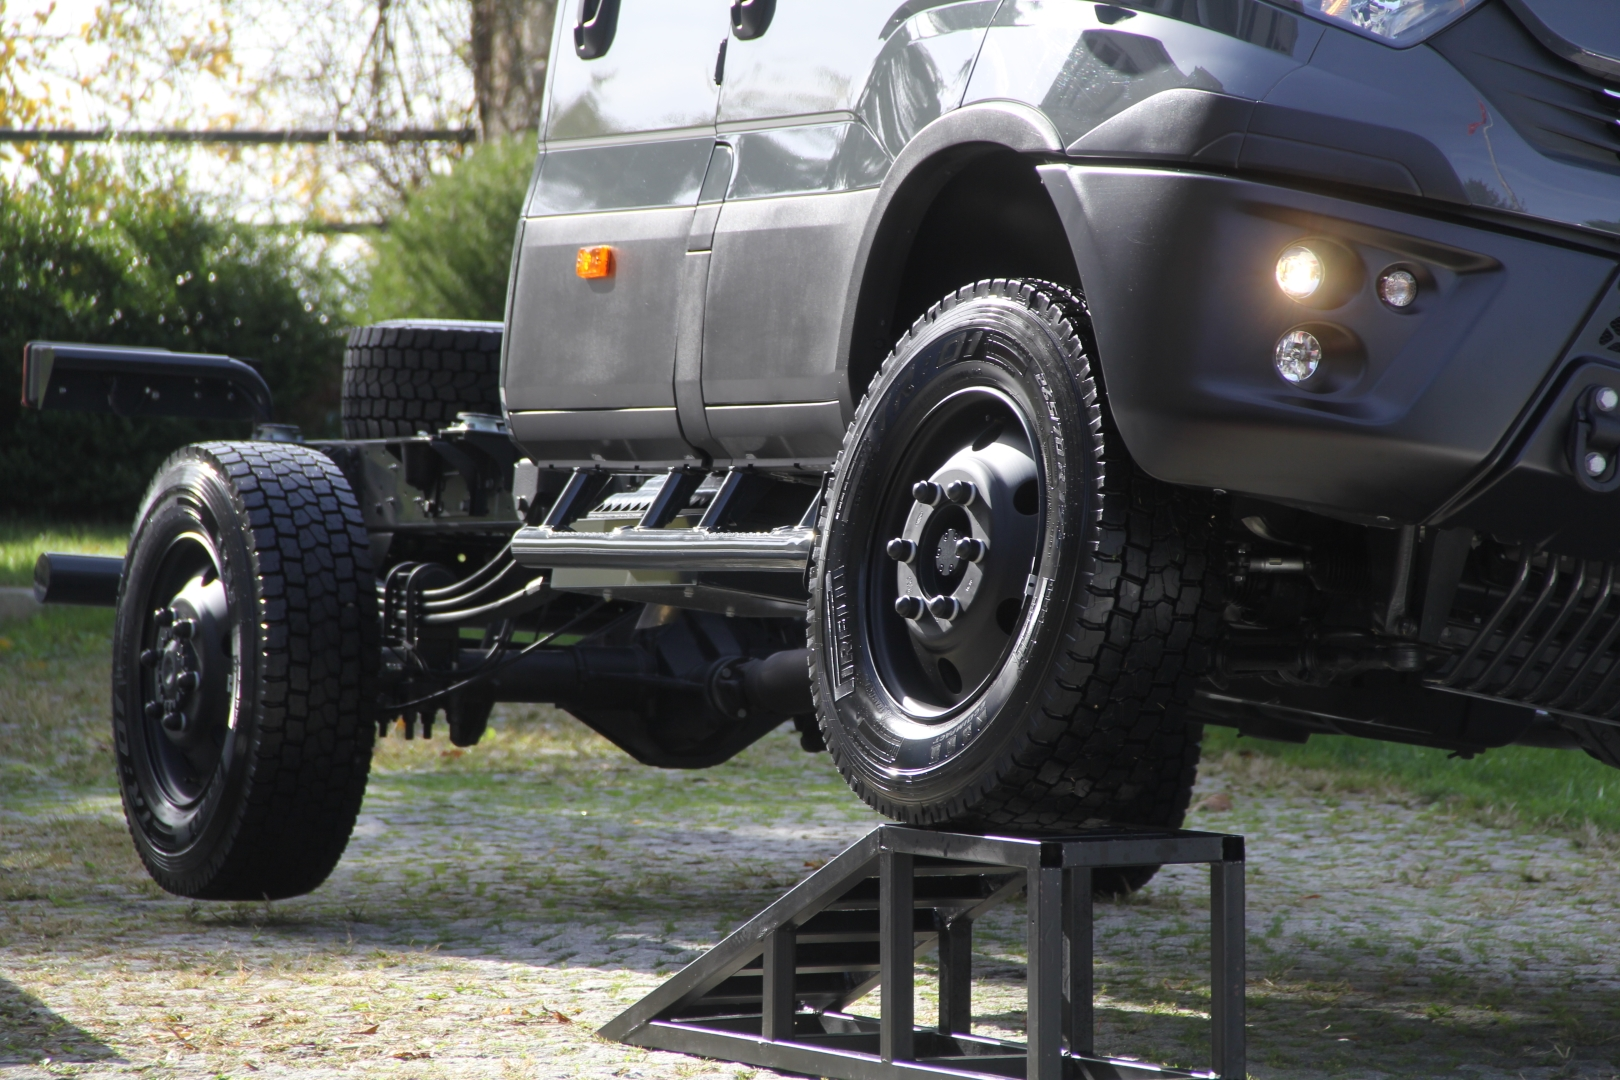 iveco-daily-4x4-(11).jpg